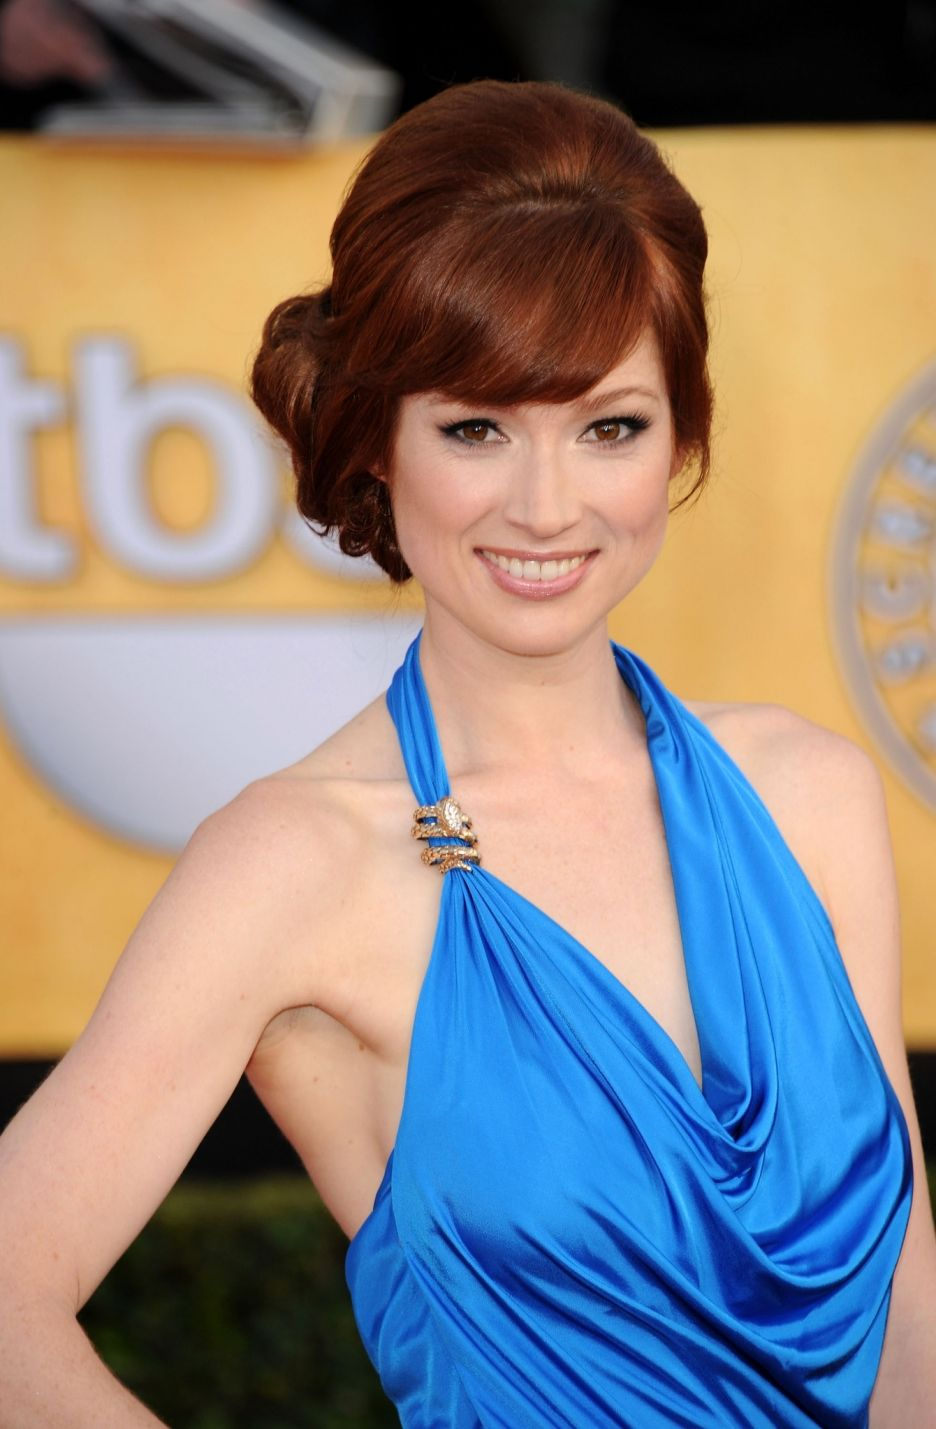 Ellie Kemper pretty hair color | People I want to meet ...